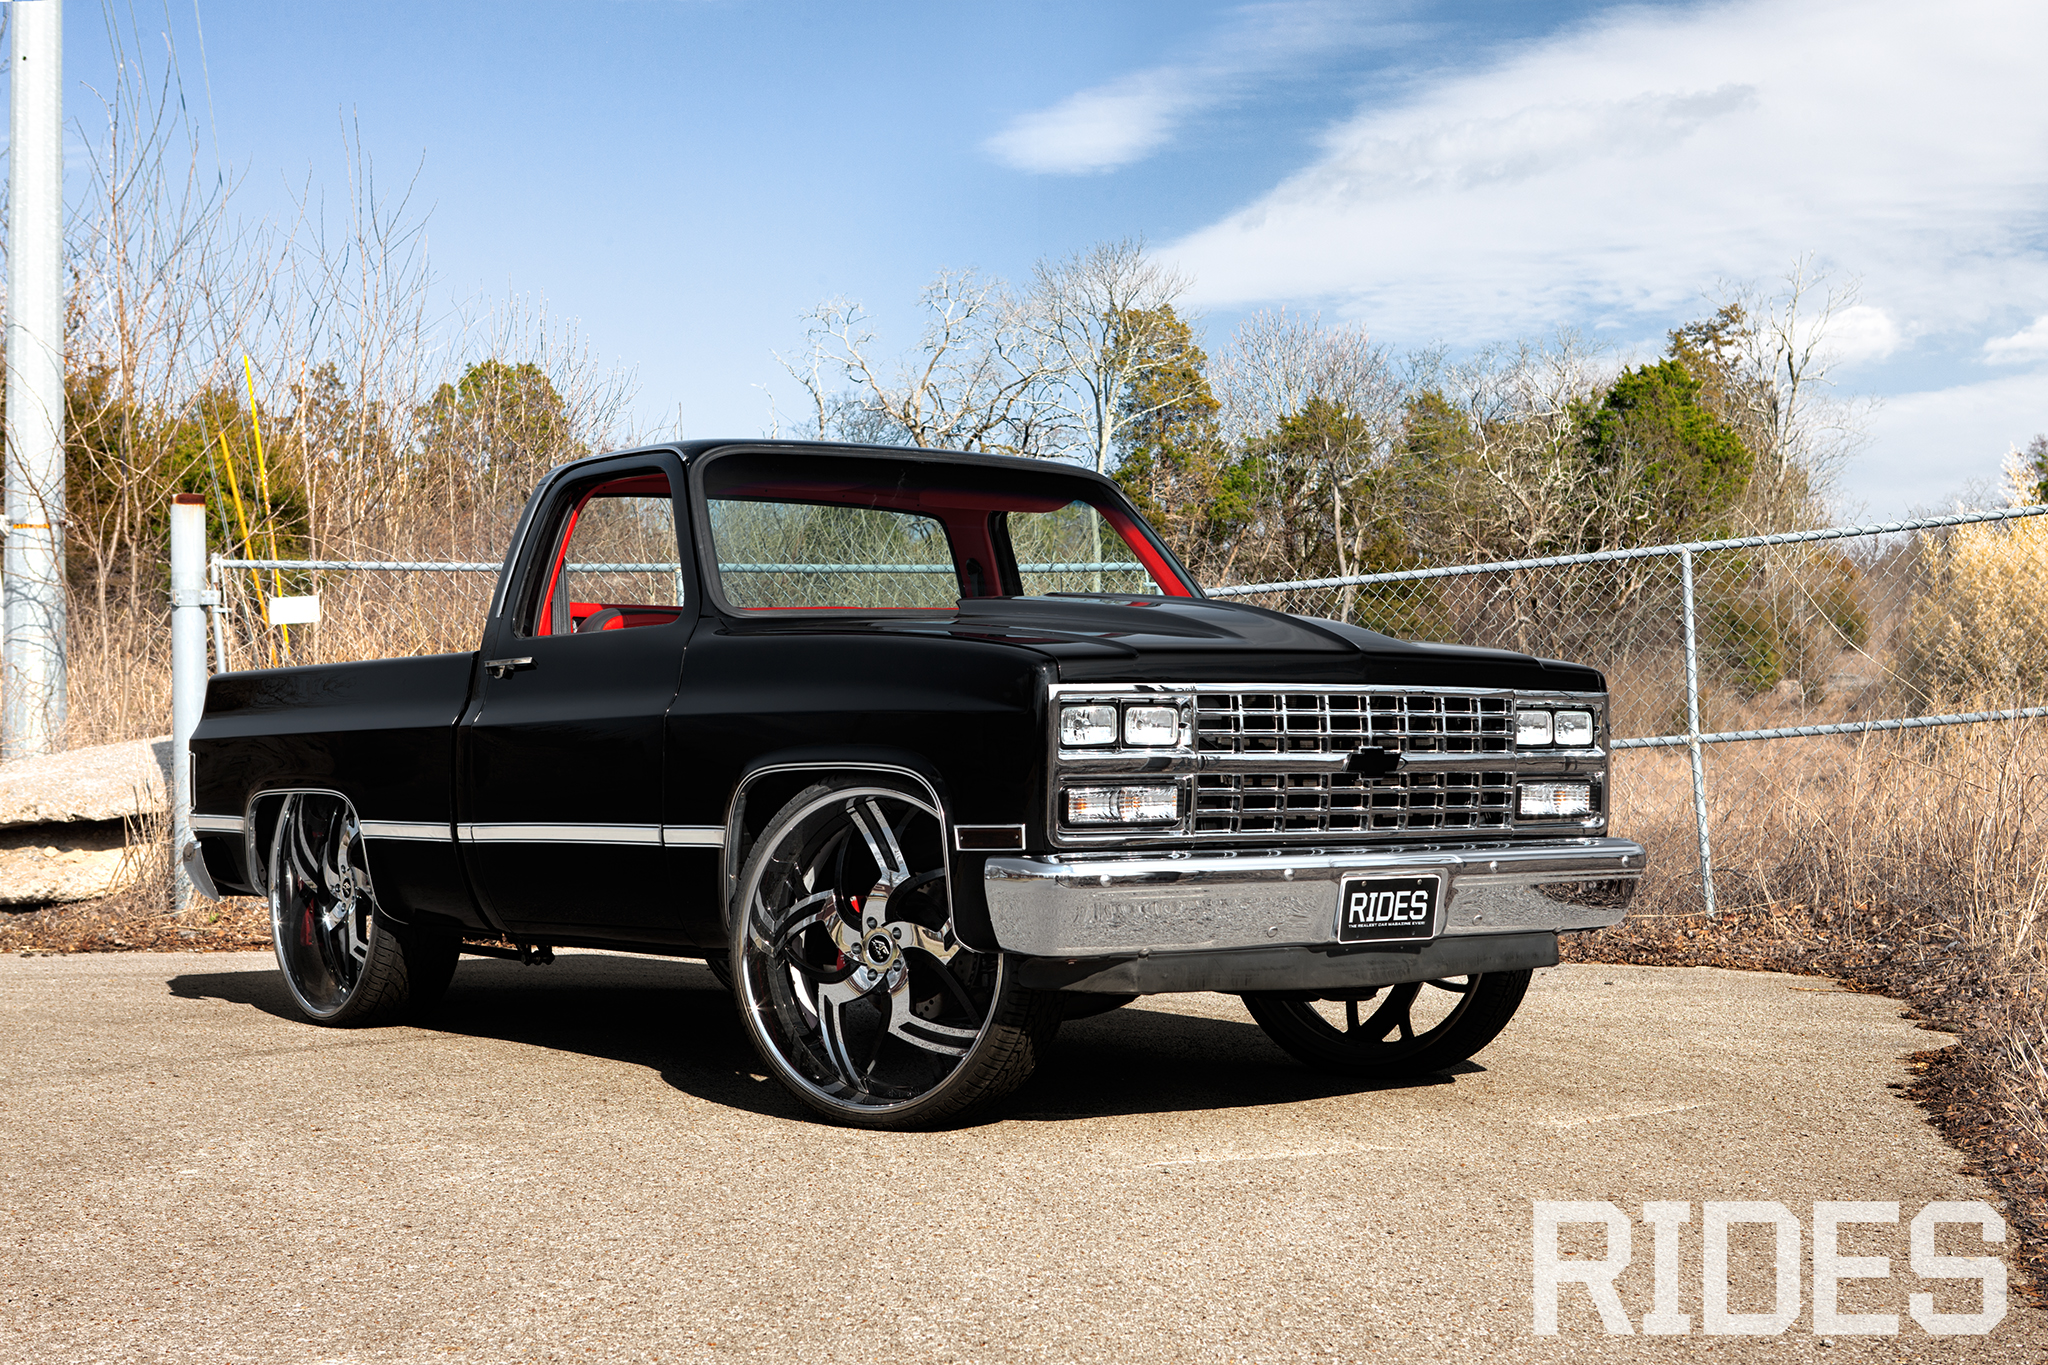 1984 Chevrolet C10: Georgia Bully - Rides Magazine